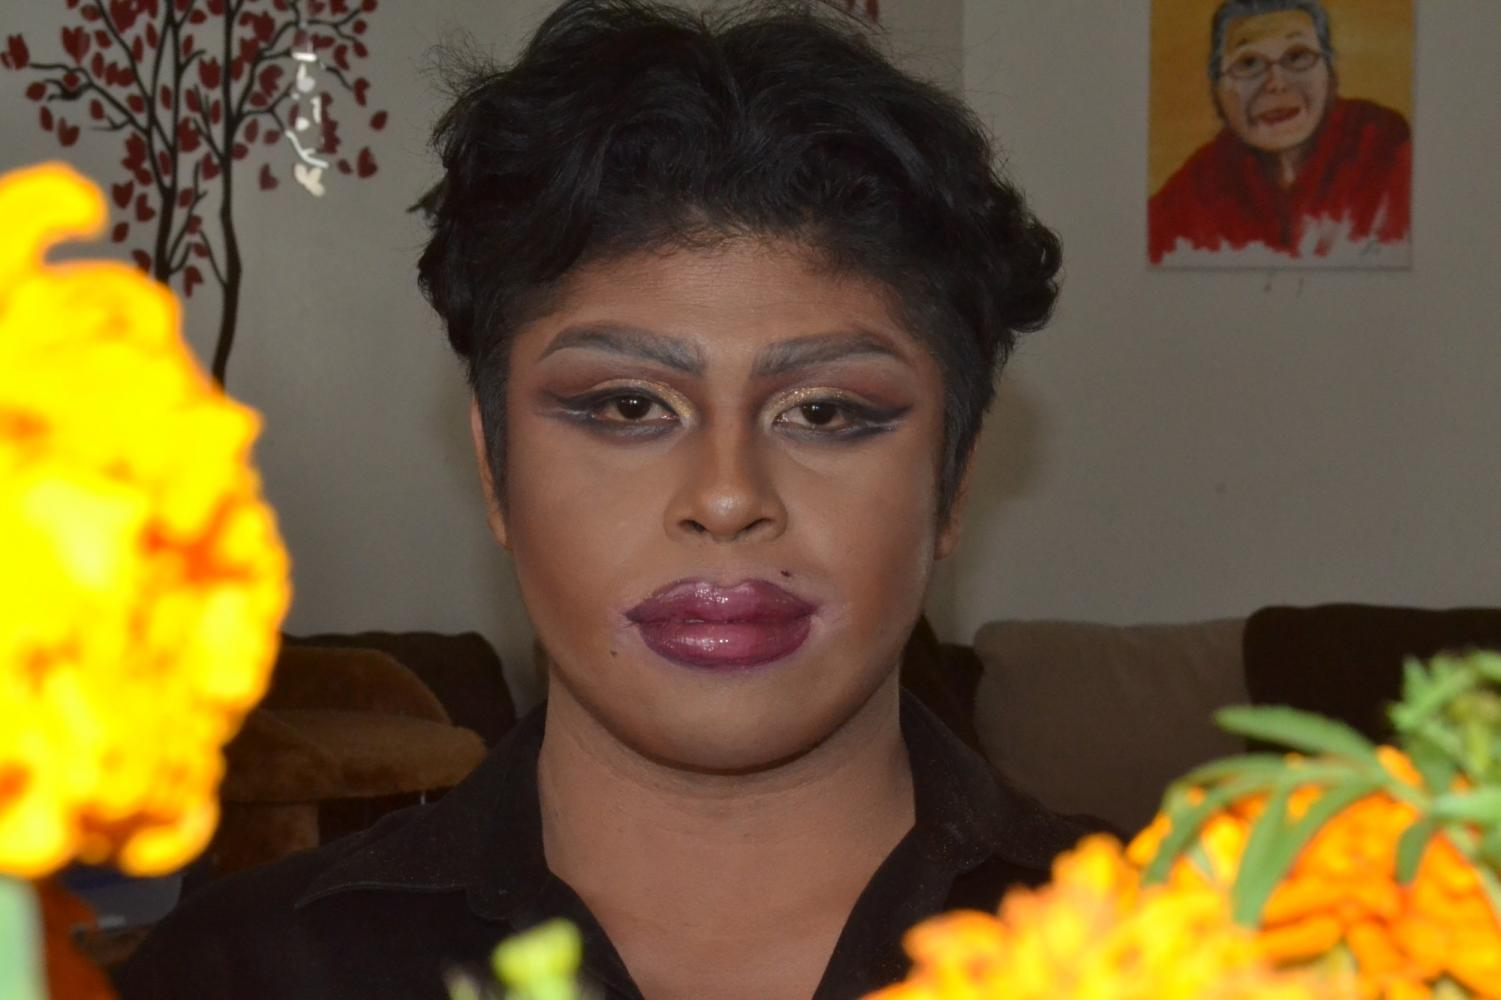 Reysand Benasfre balances school and his love for makeup while living a double life as his drag persona